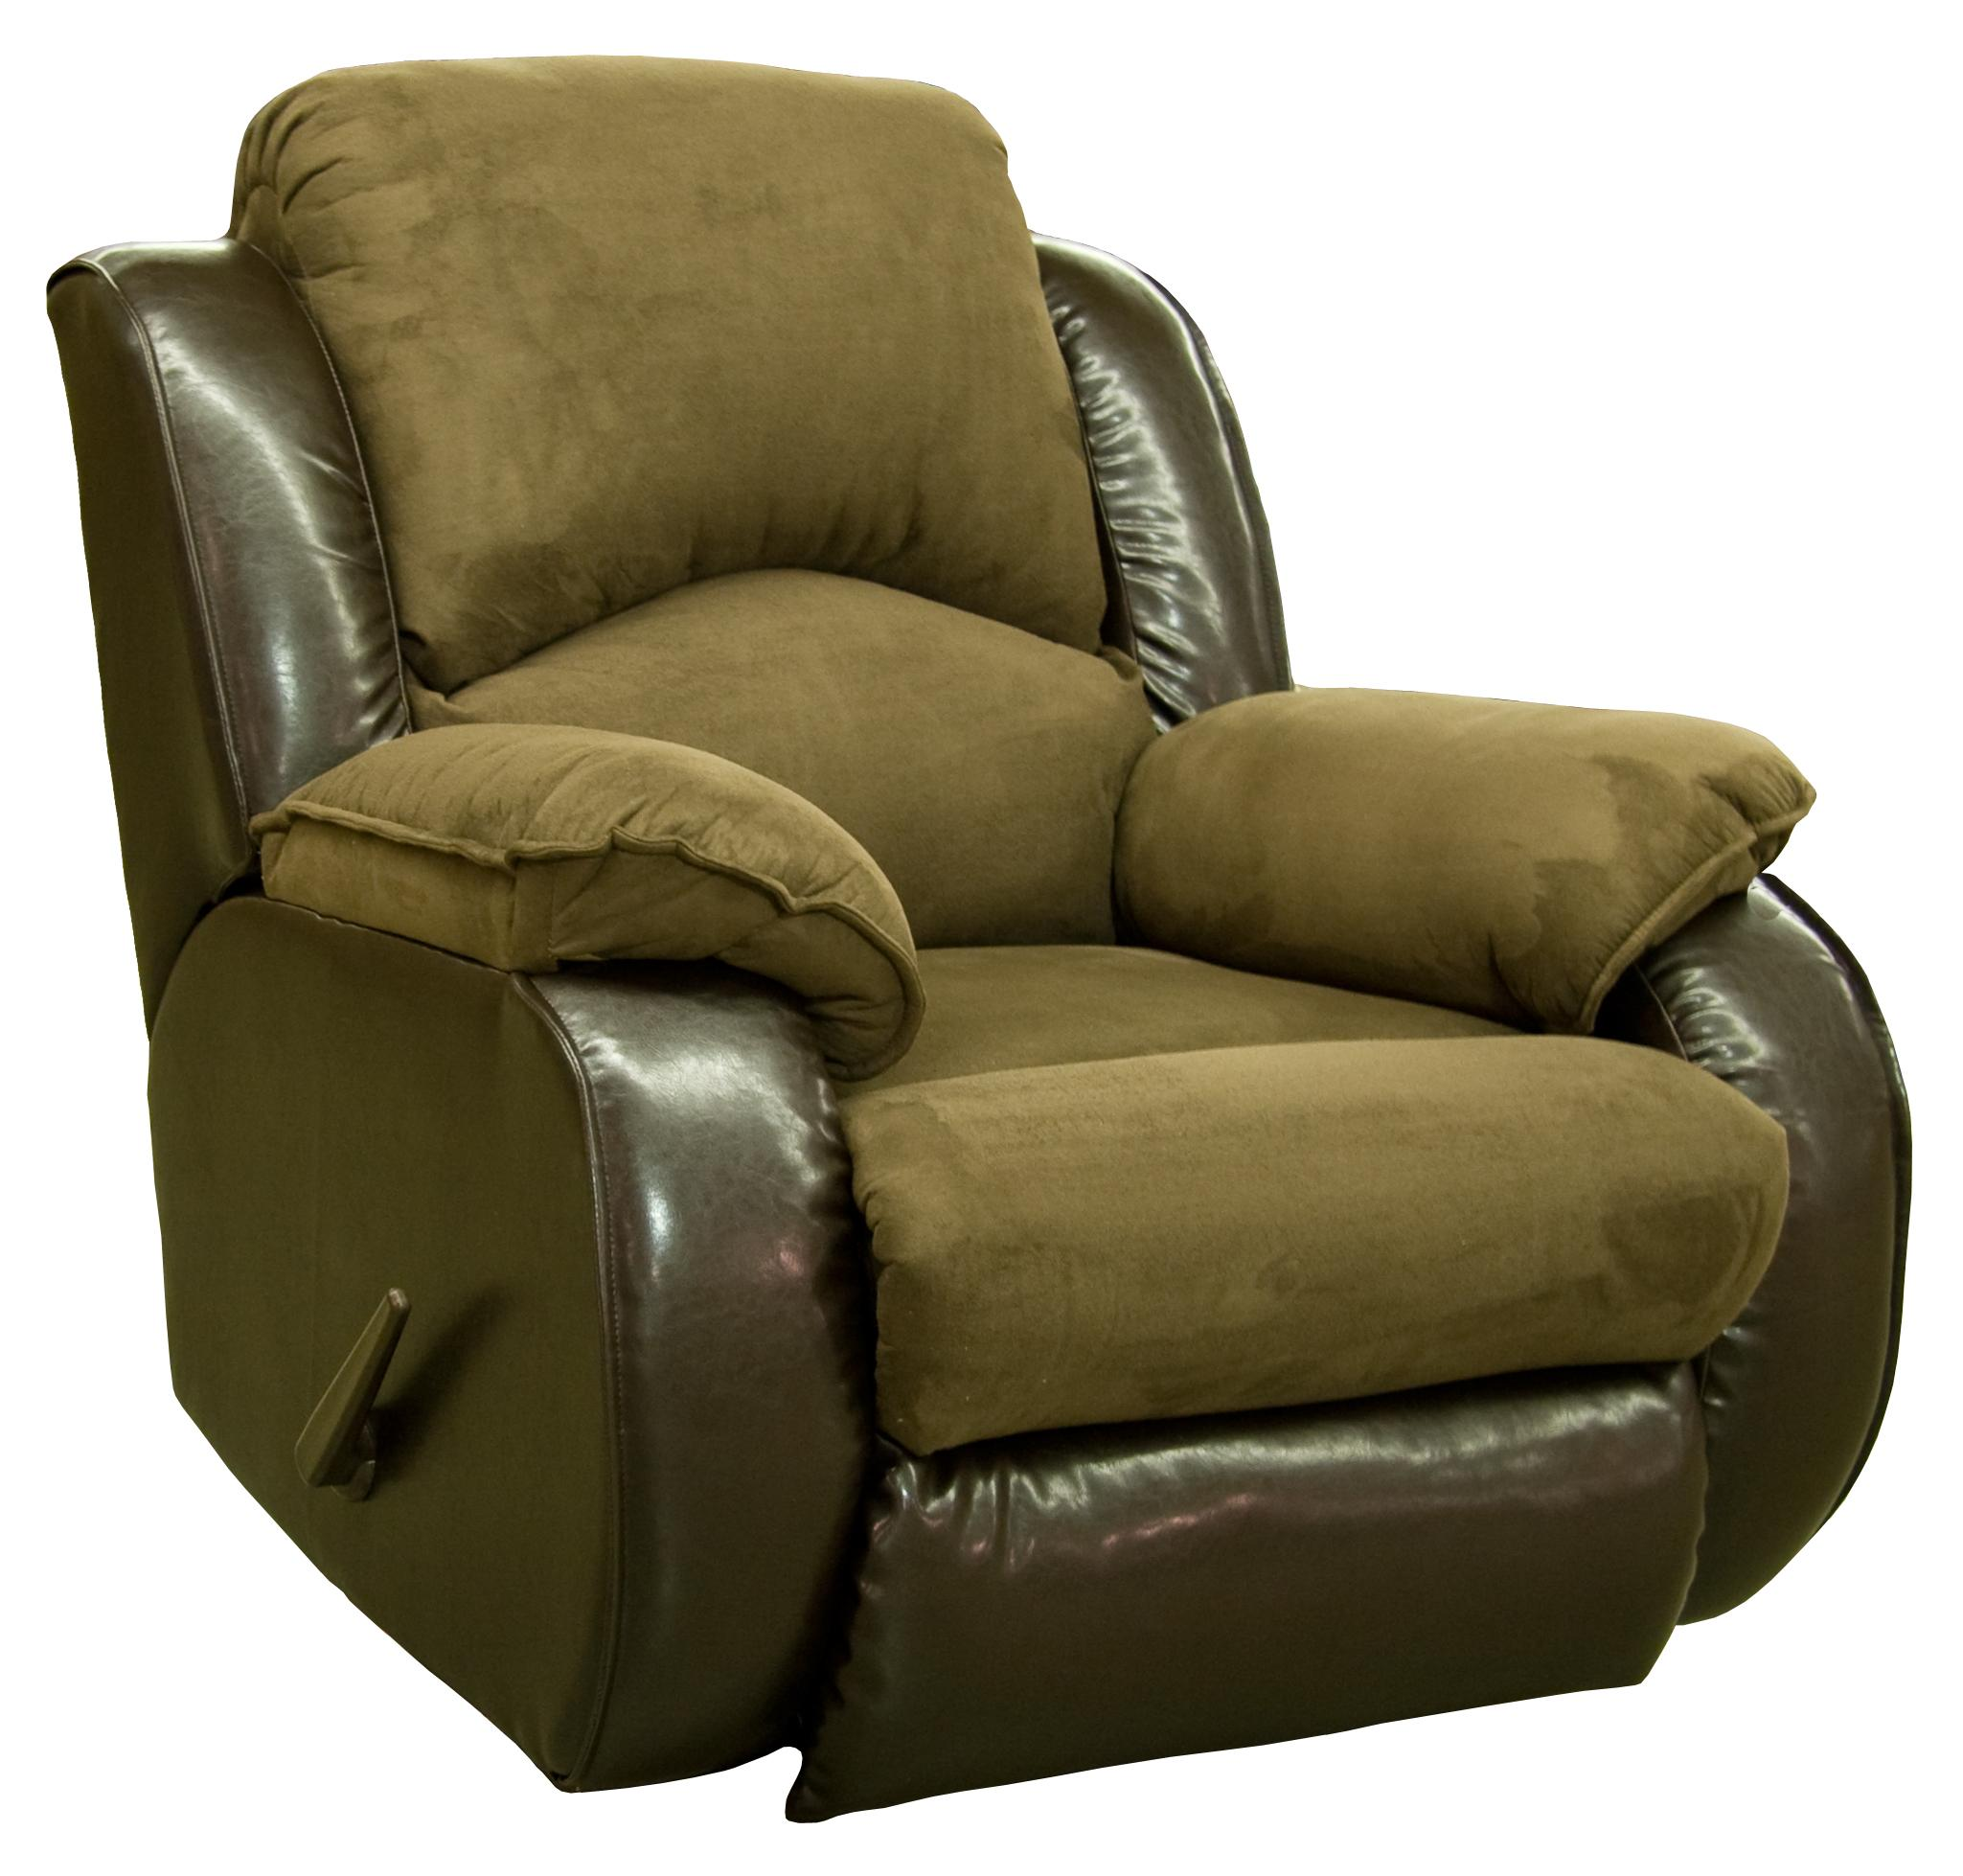 Southern Motion Jolson Power Wall Hugger Recliner  - Item Number: 2106 PWR